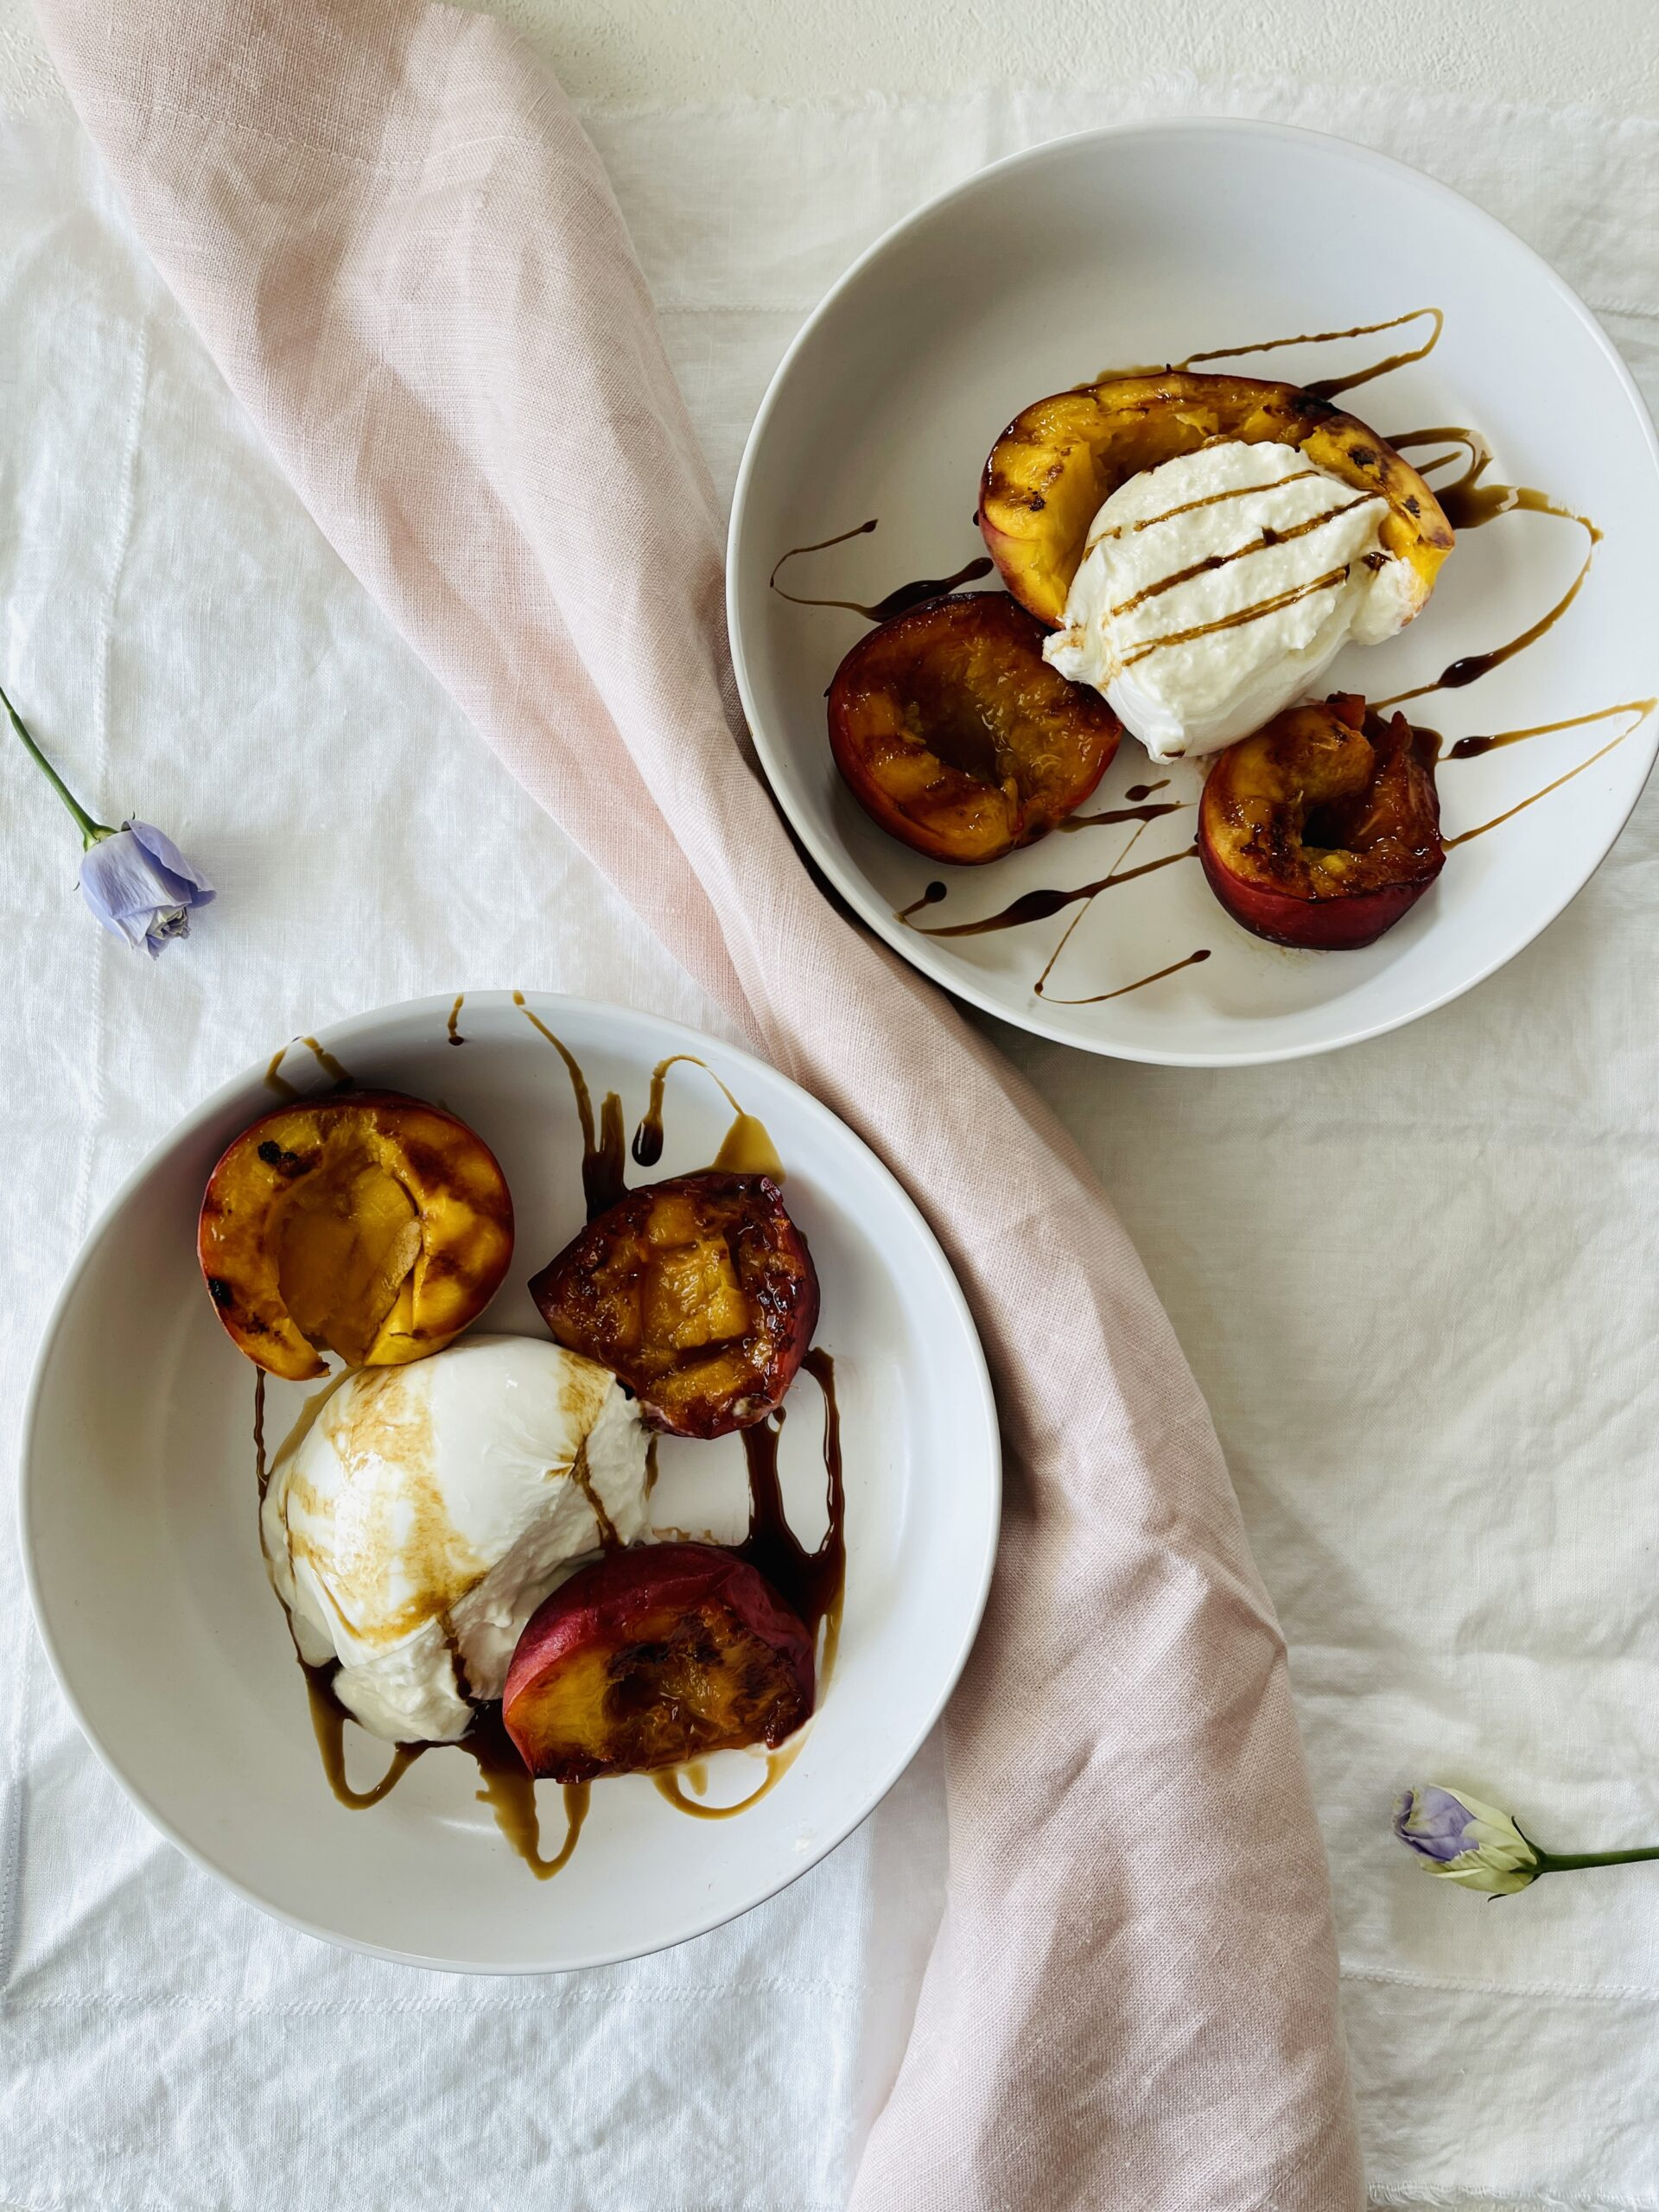 Grilled Peach and Burrata Salad with Balsamic Reduction